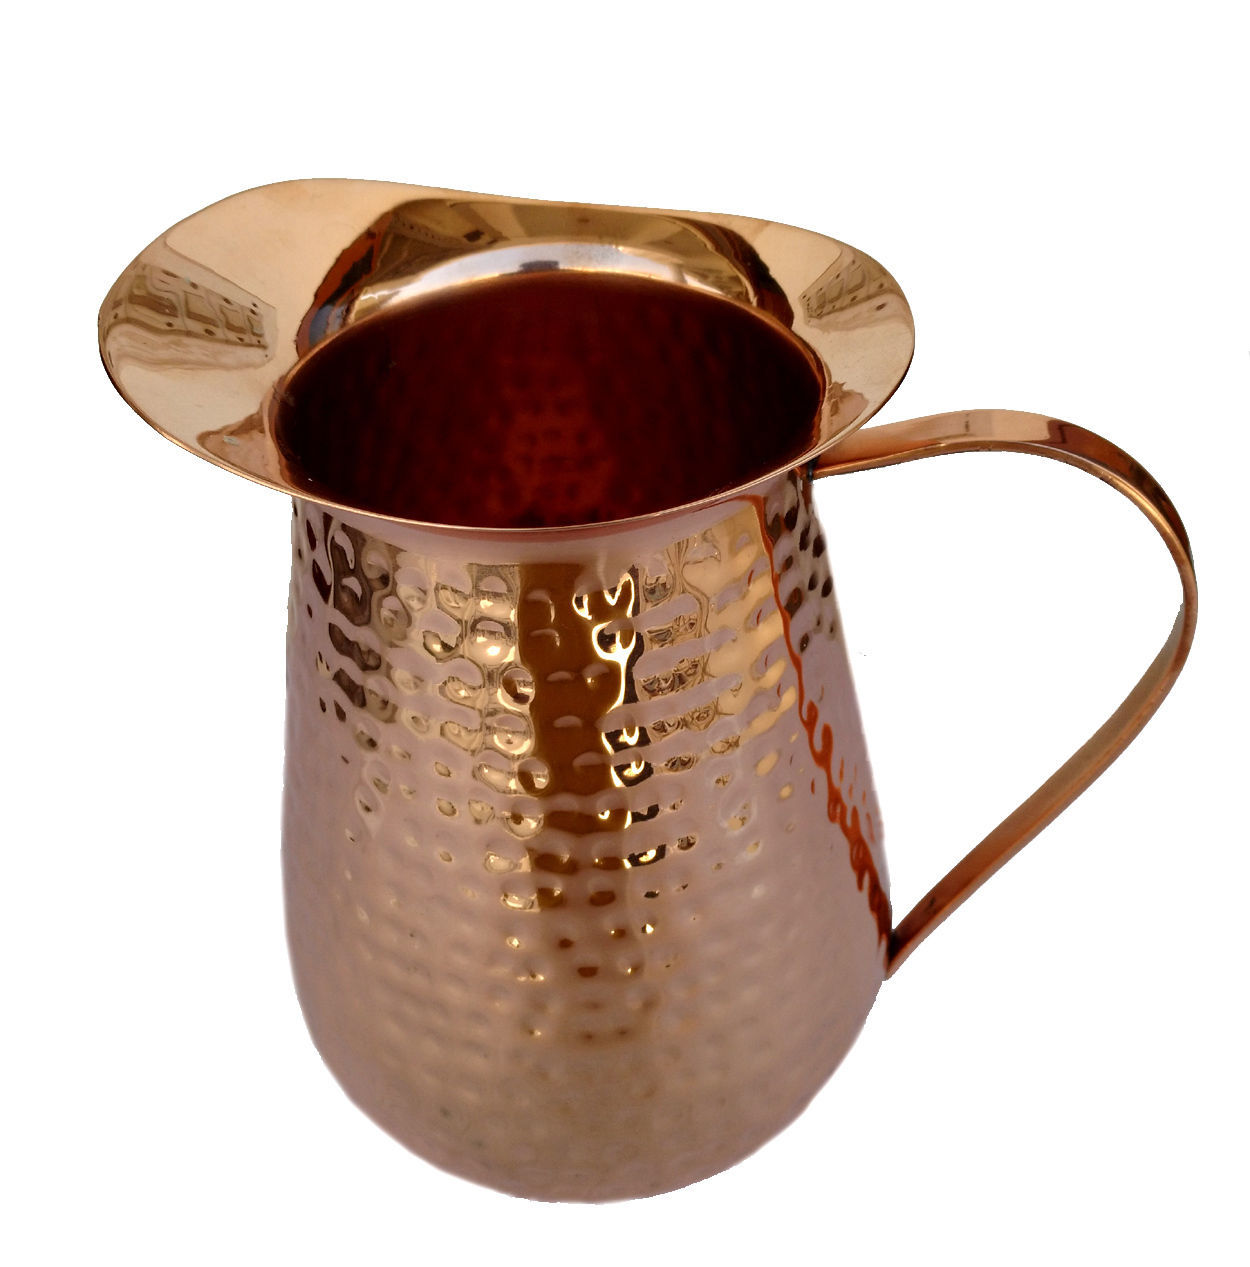 Copper Jug Heavy Gauge Pure Solid Hammered Moscow Pure Copper Pitcher For home